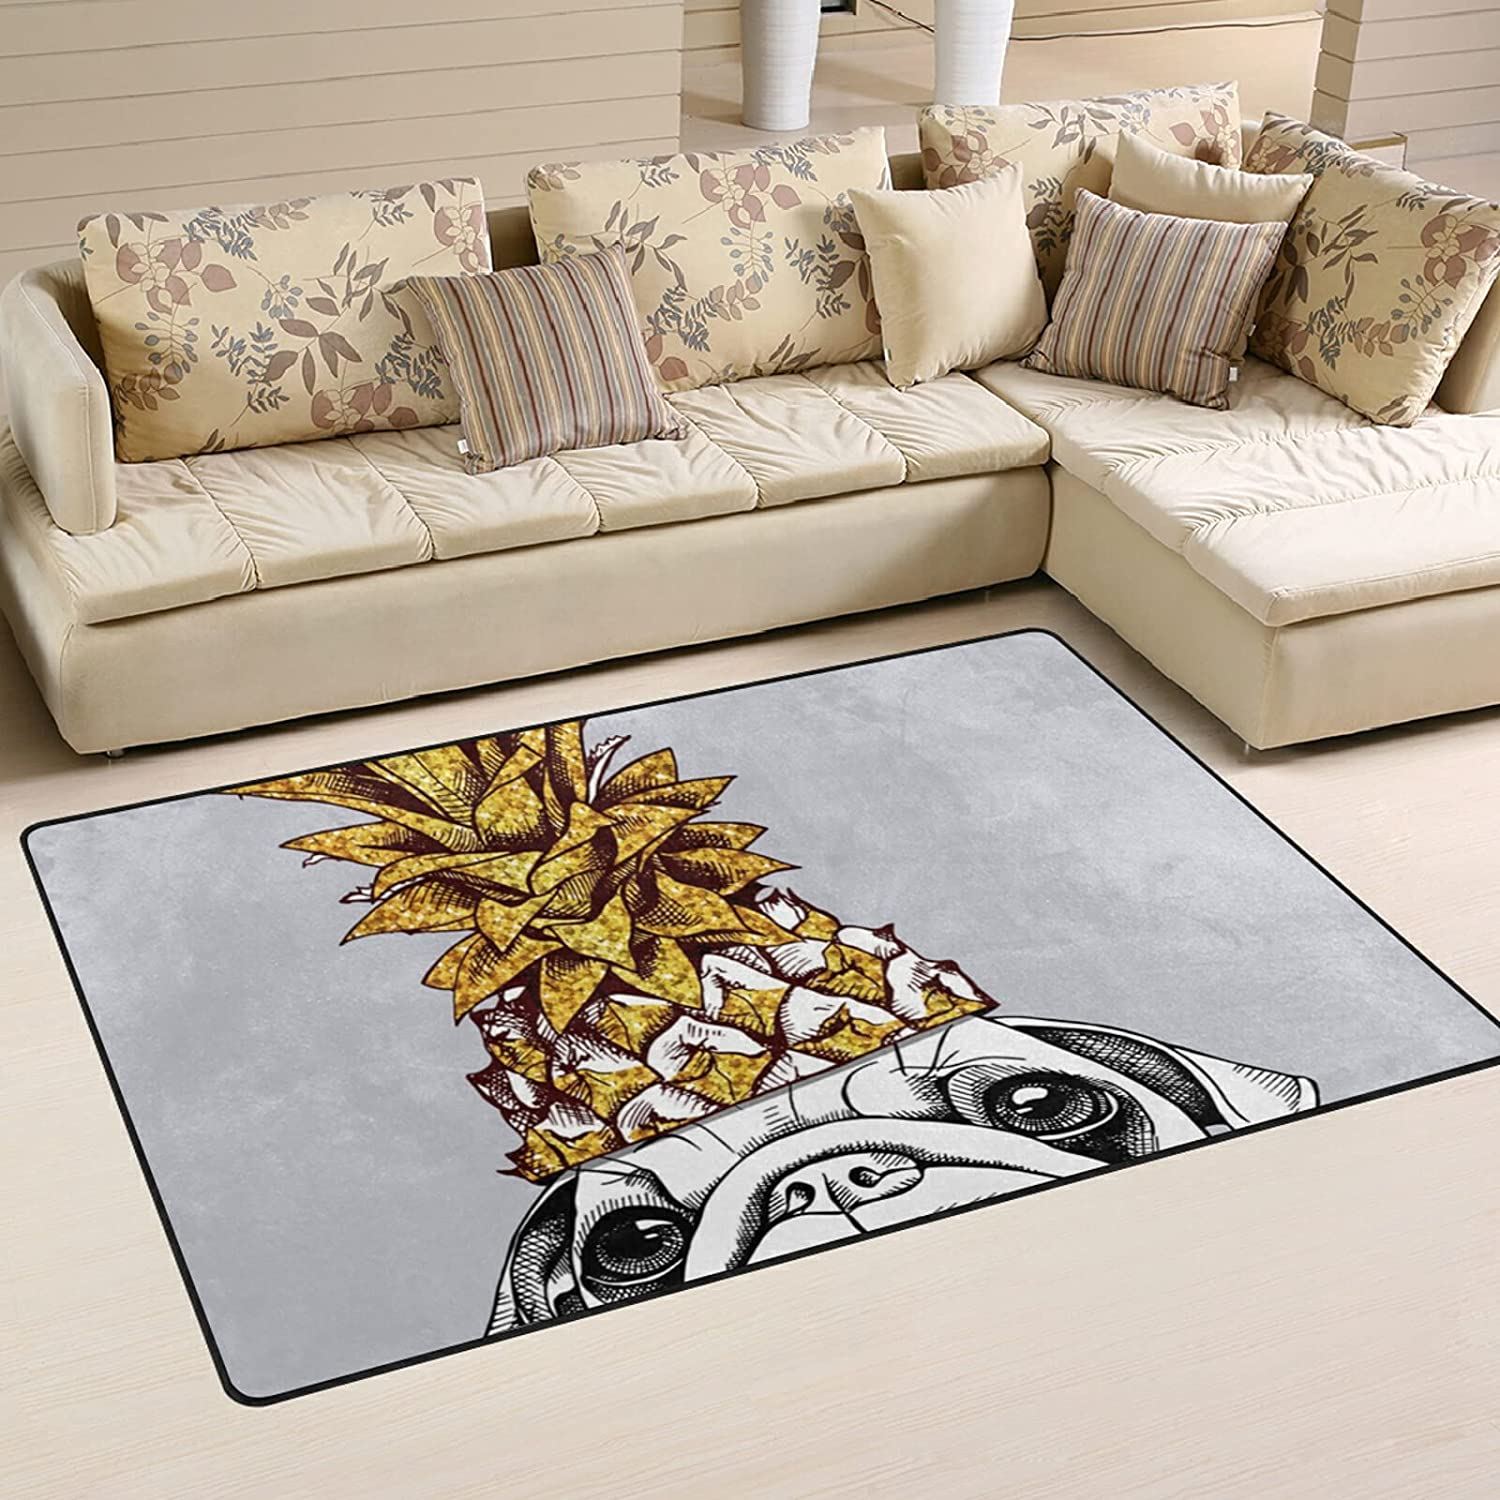 Pug Dog Gold Indianapolis Mall Pineapple Large Max 48% OFF Soft Area Nursery Playmat Rug Rugs